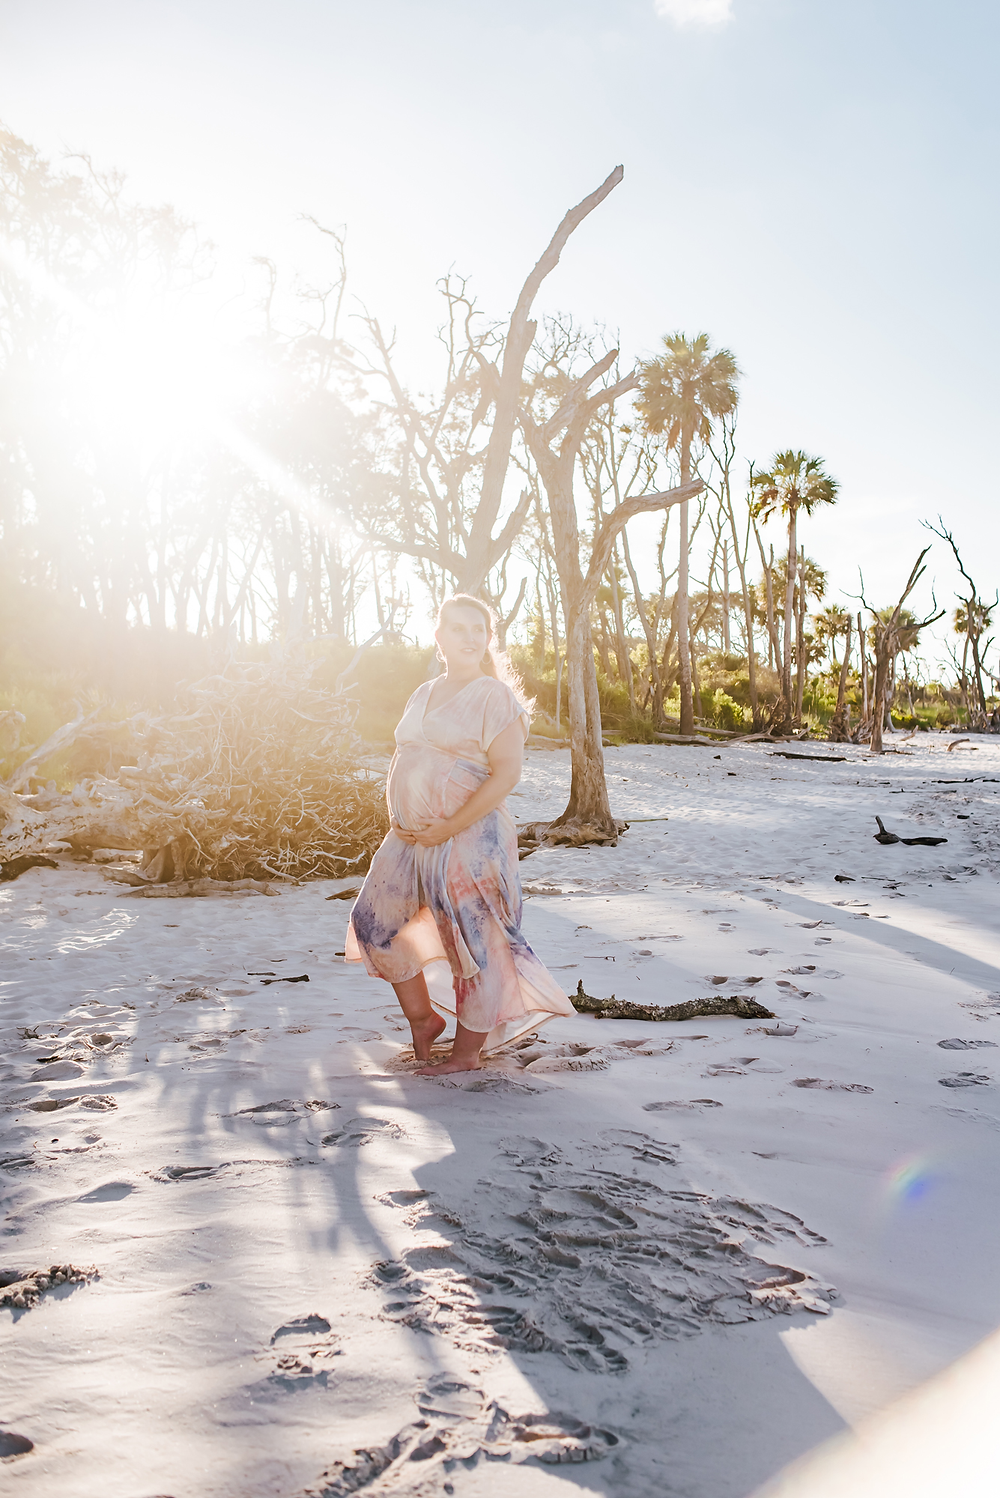 affordable maternity photography near me